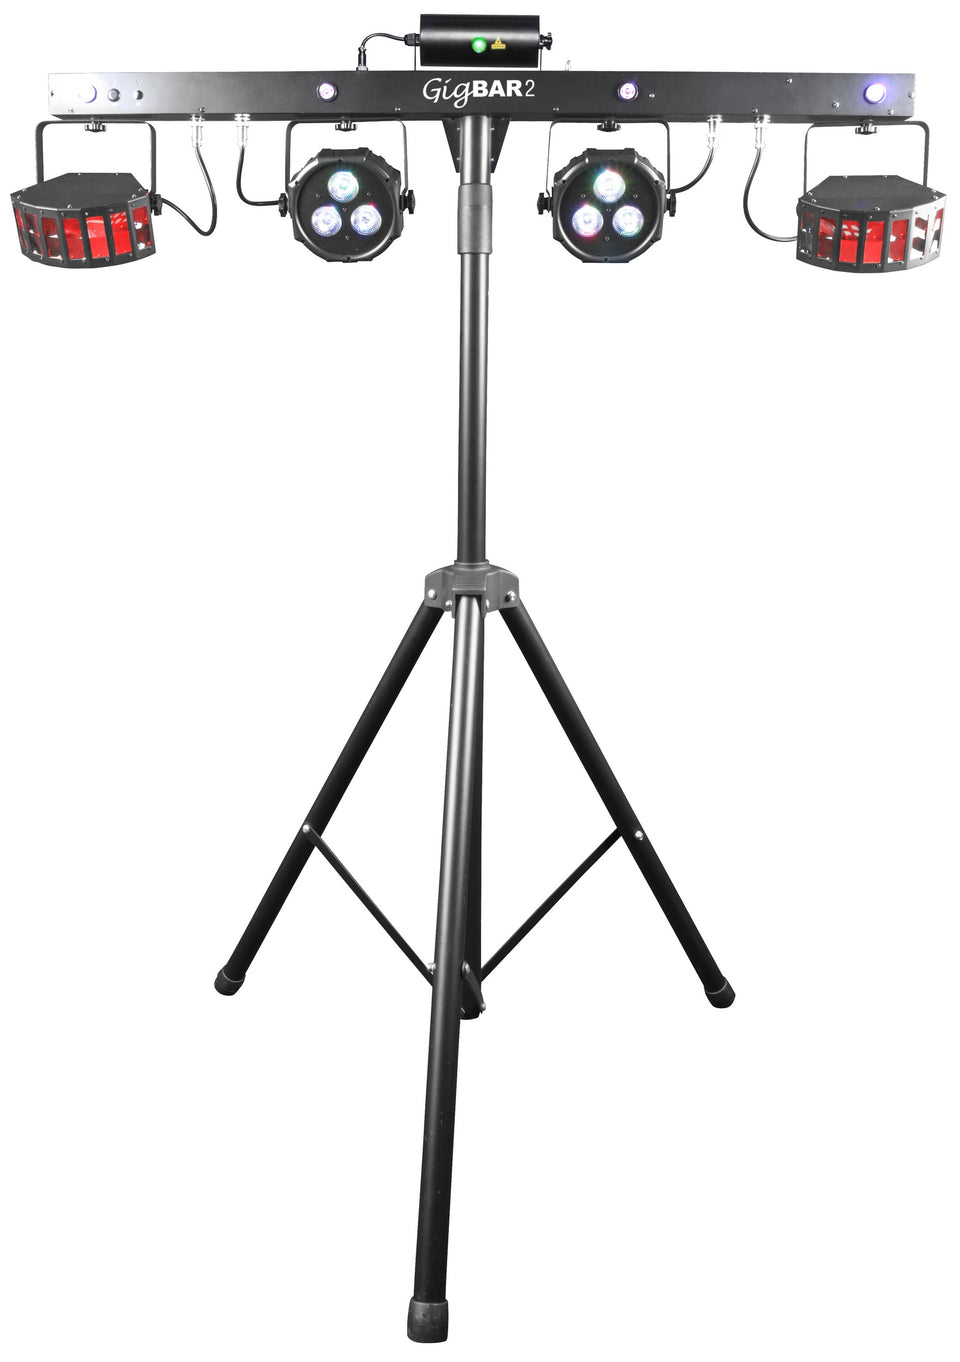 CHAUVET DJ GIGBAR2 4-In-1 Lighting Package